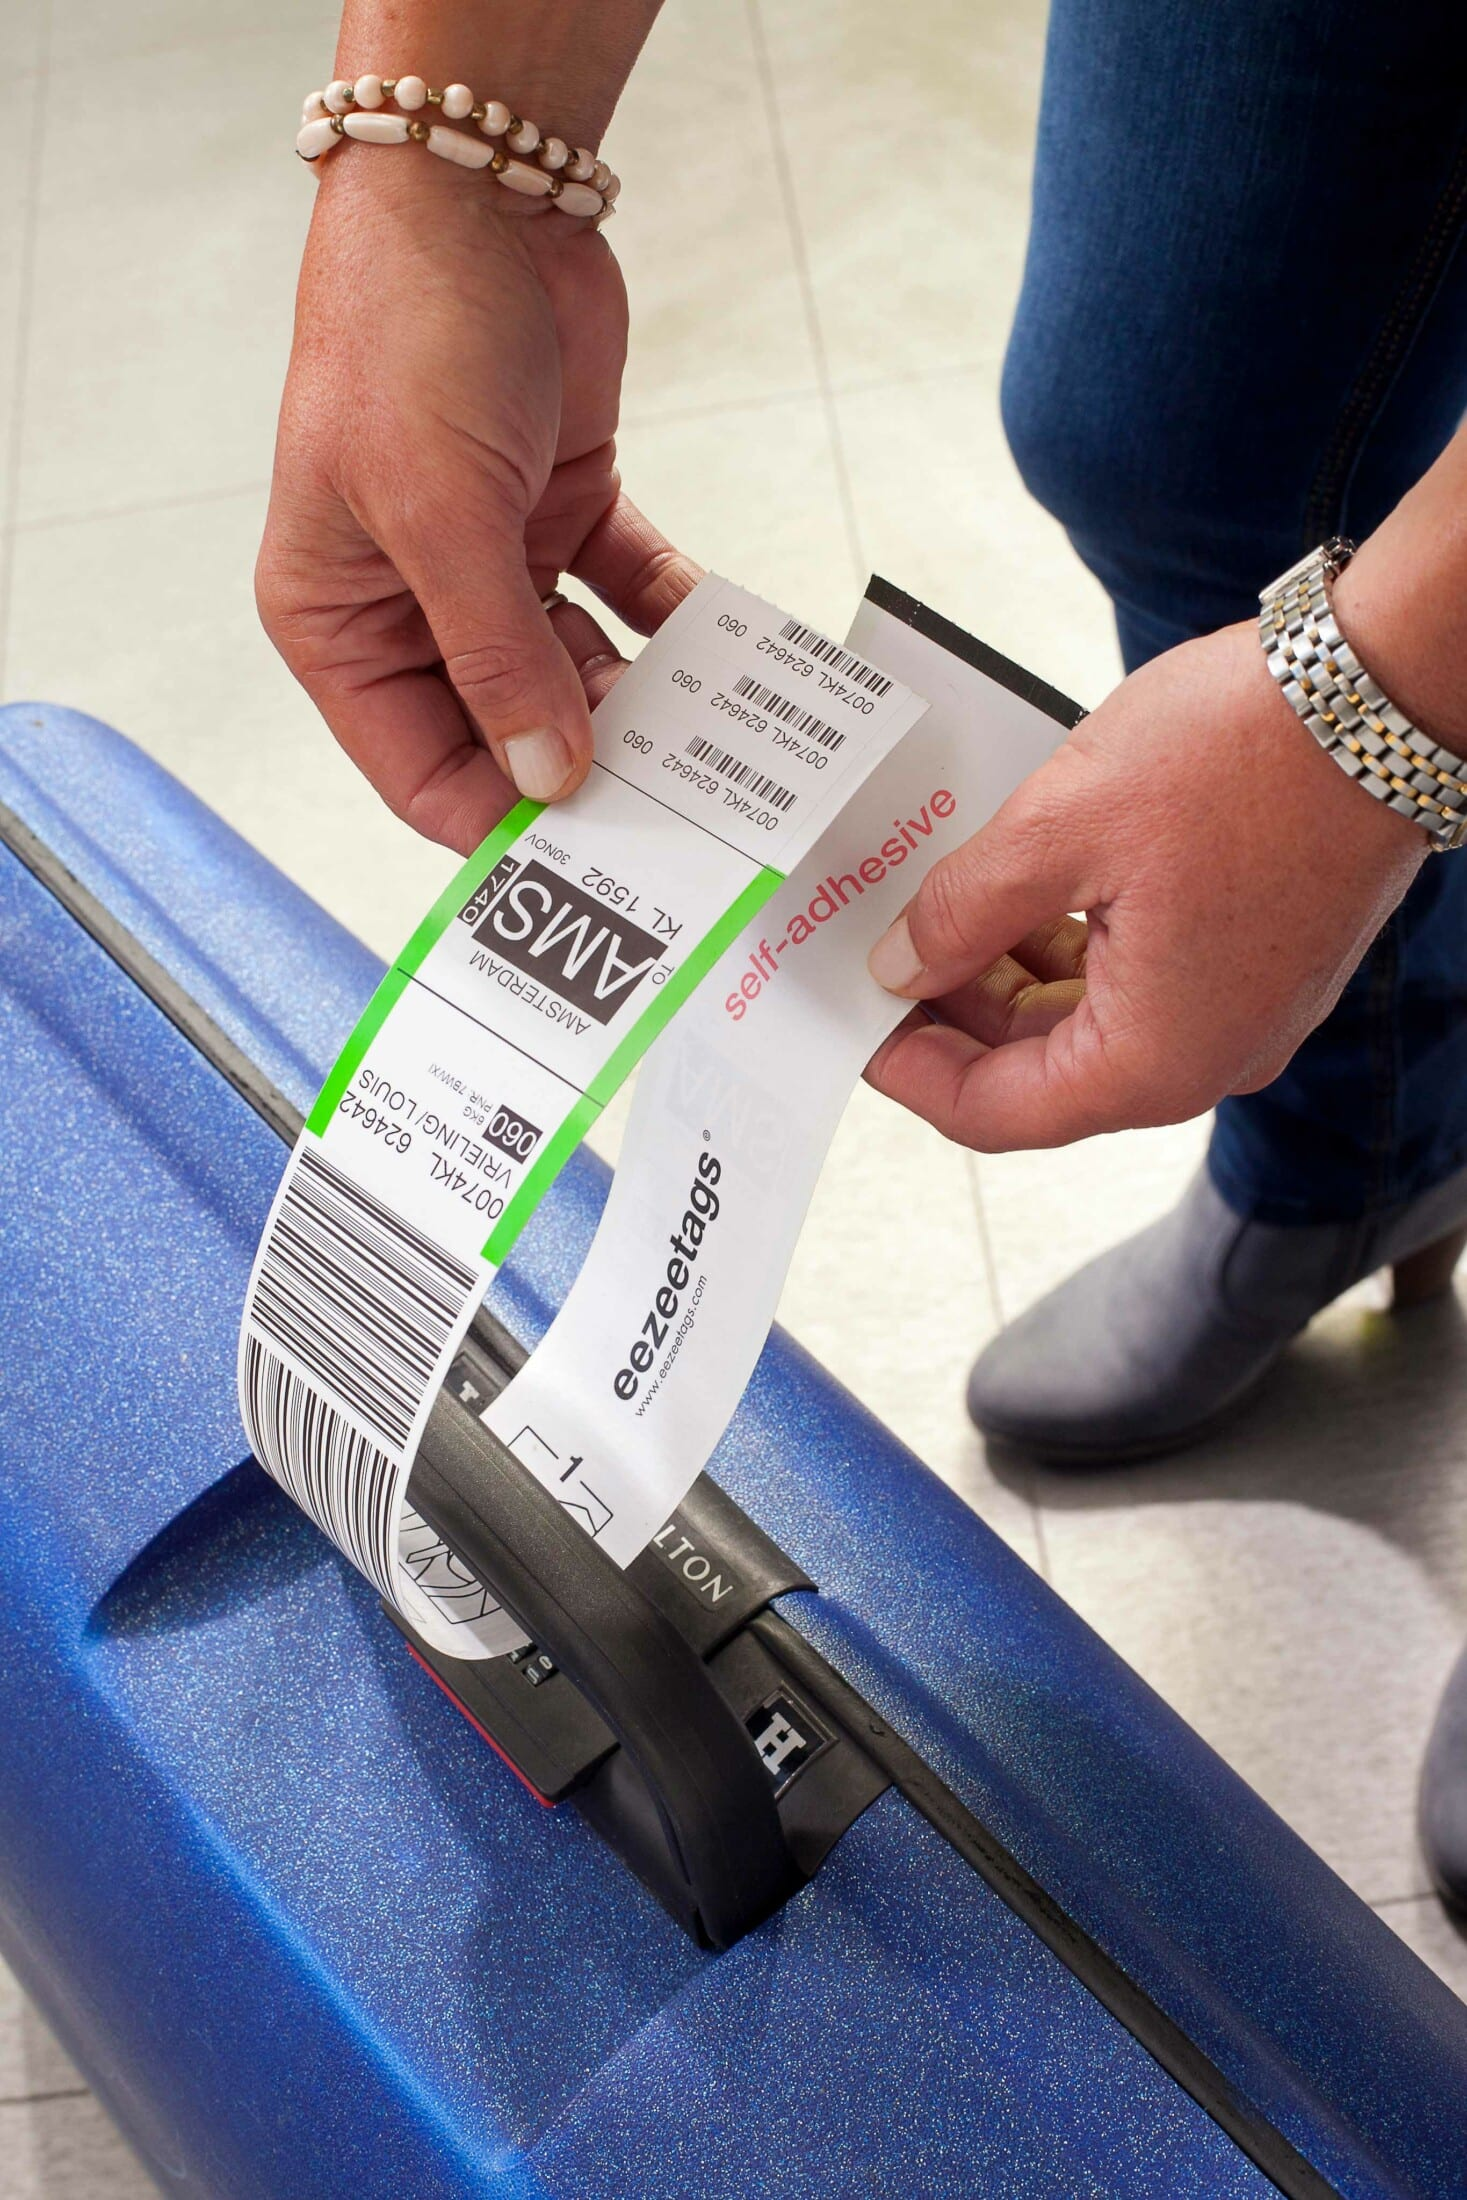 Sihl and eezeetags® – a strong collaboration for future self-service check-in at airports